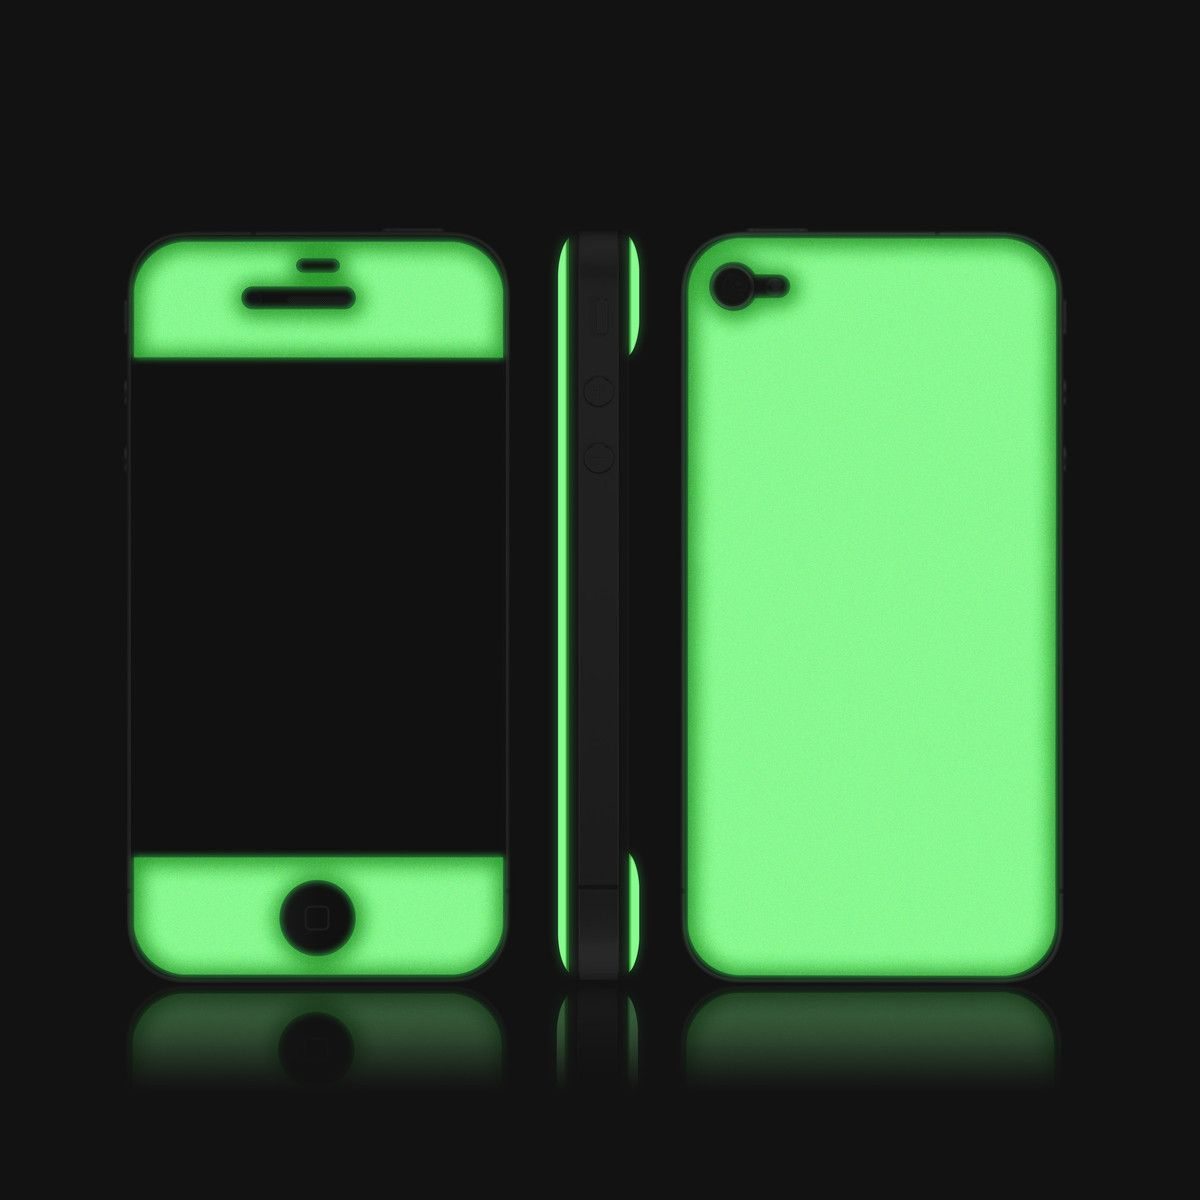 iPhone 4/4S Glow Gel Apple by Adaptation LA Iphone skins